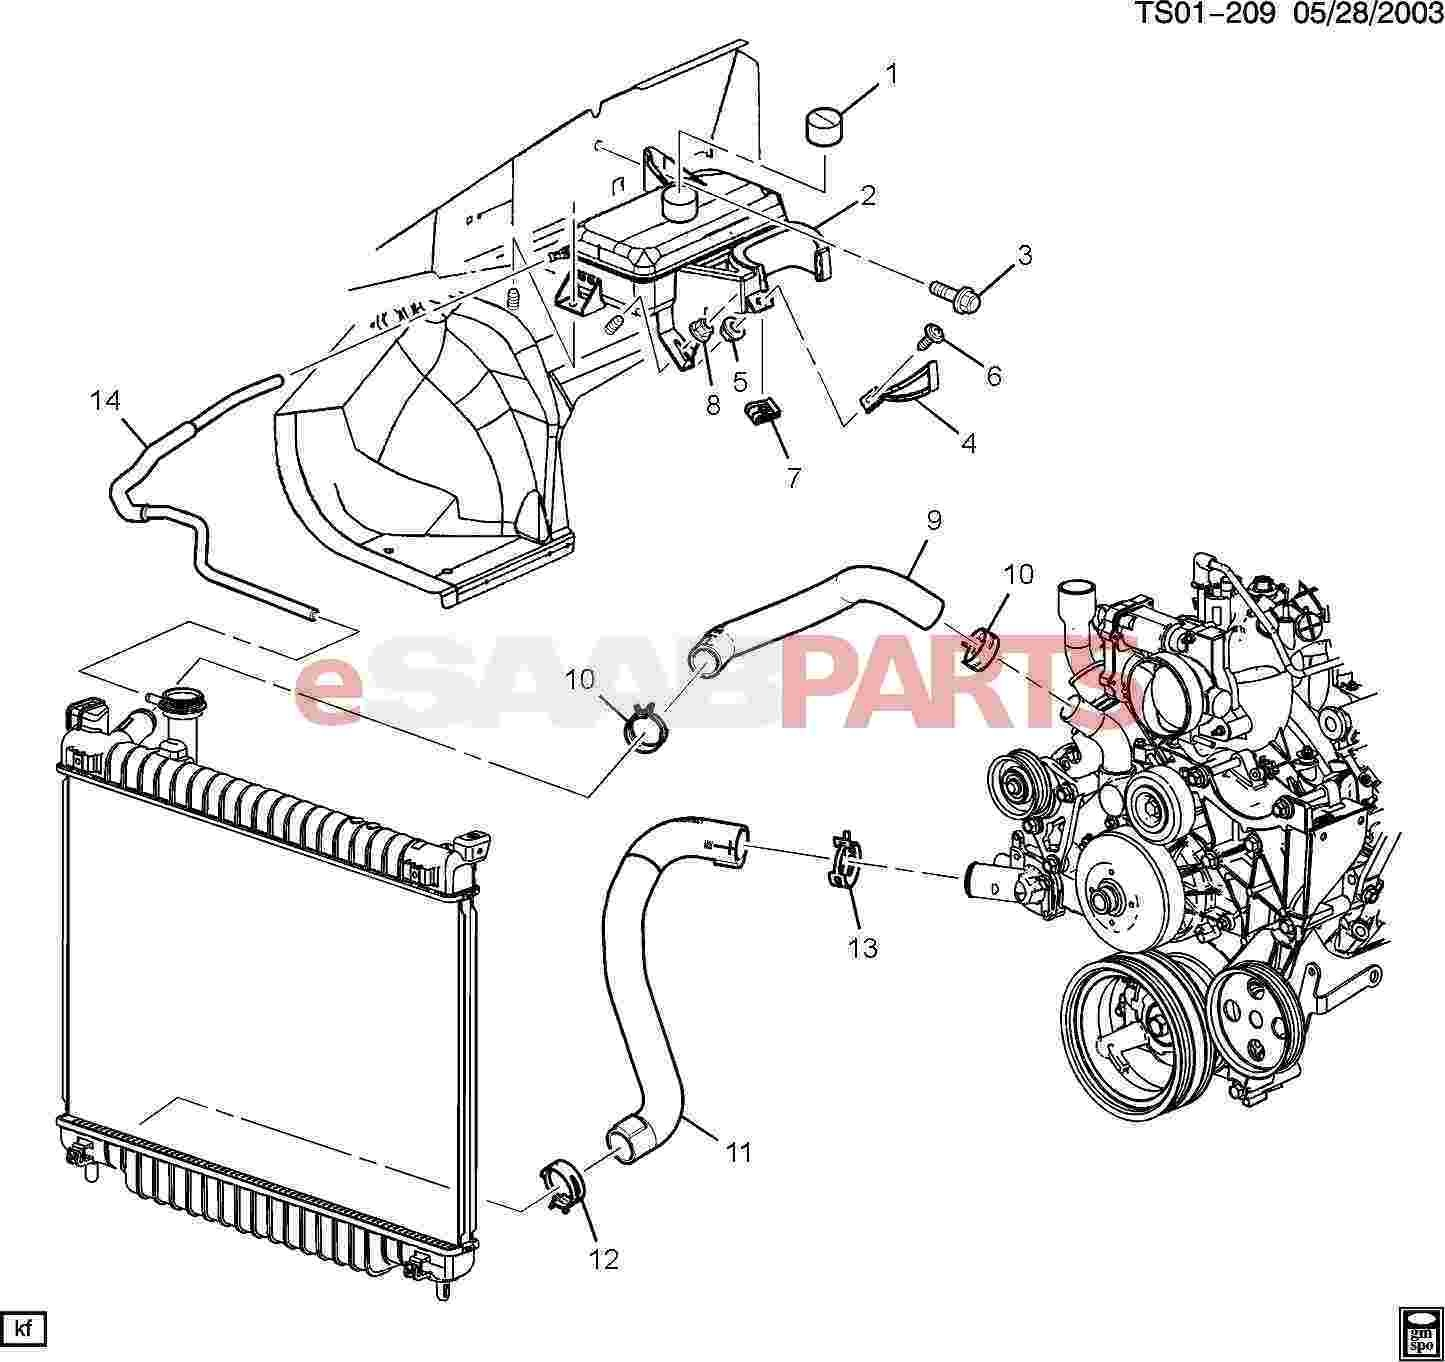 Diagram Of Car Engine Cooling System ] Saab Nut Hex with Con Wa M6x1 5 7 Thk 16 Od 9 Of Diagram Of Car Engine Cooling System